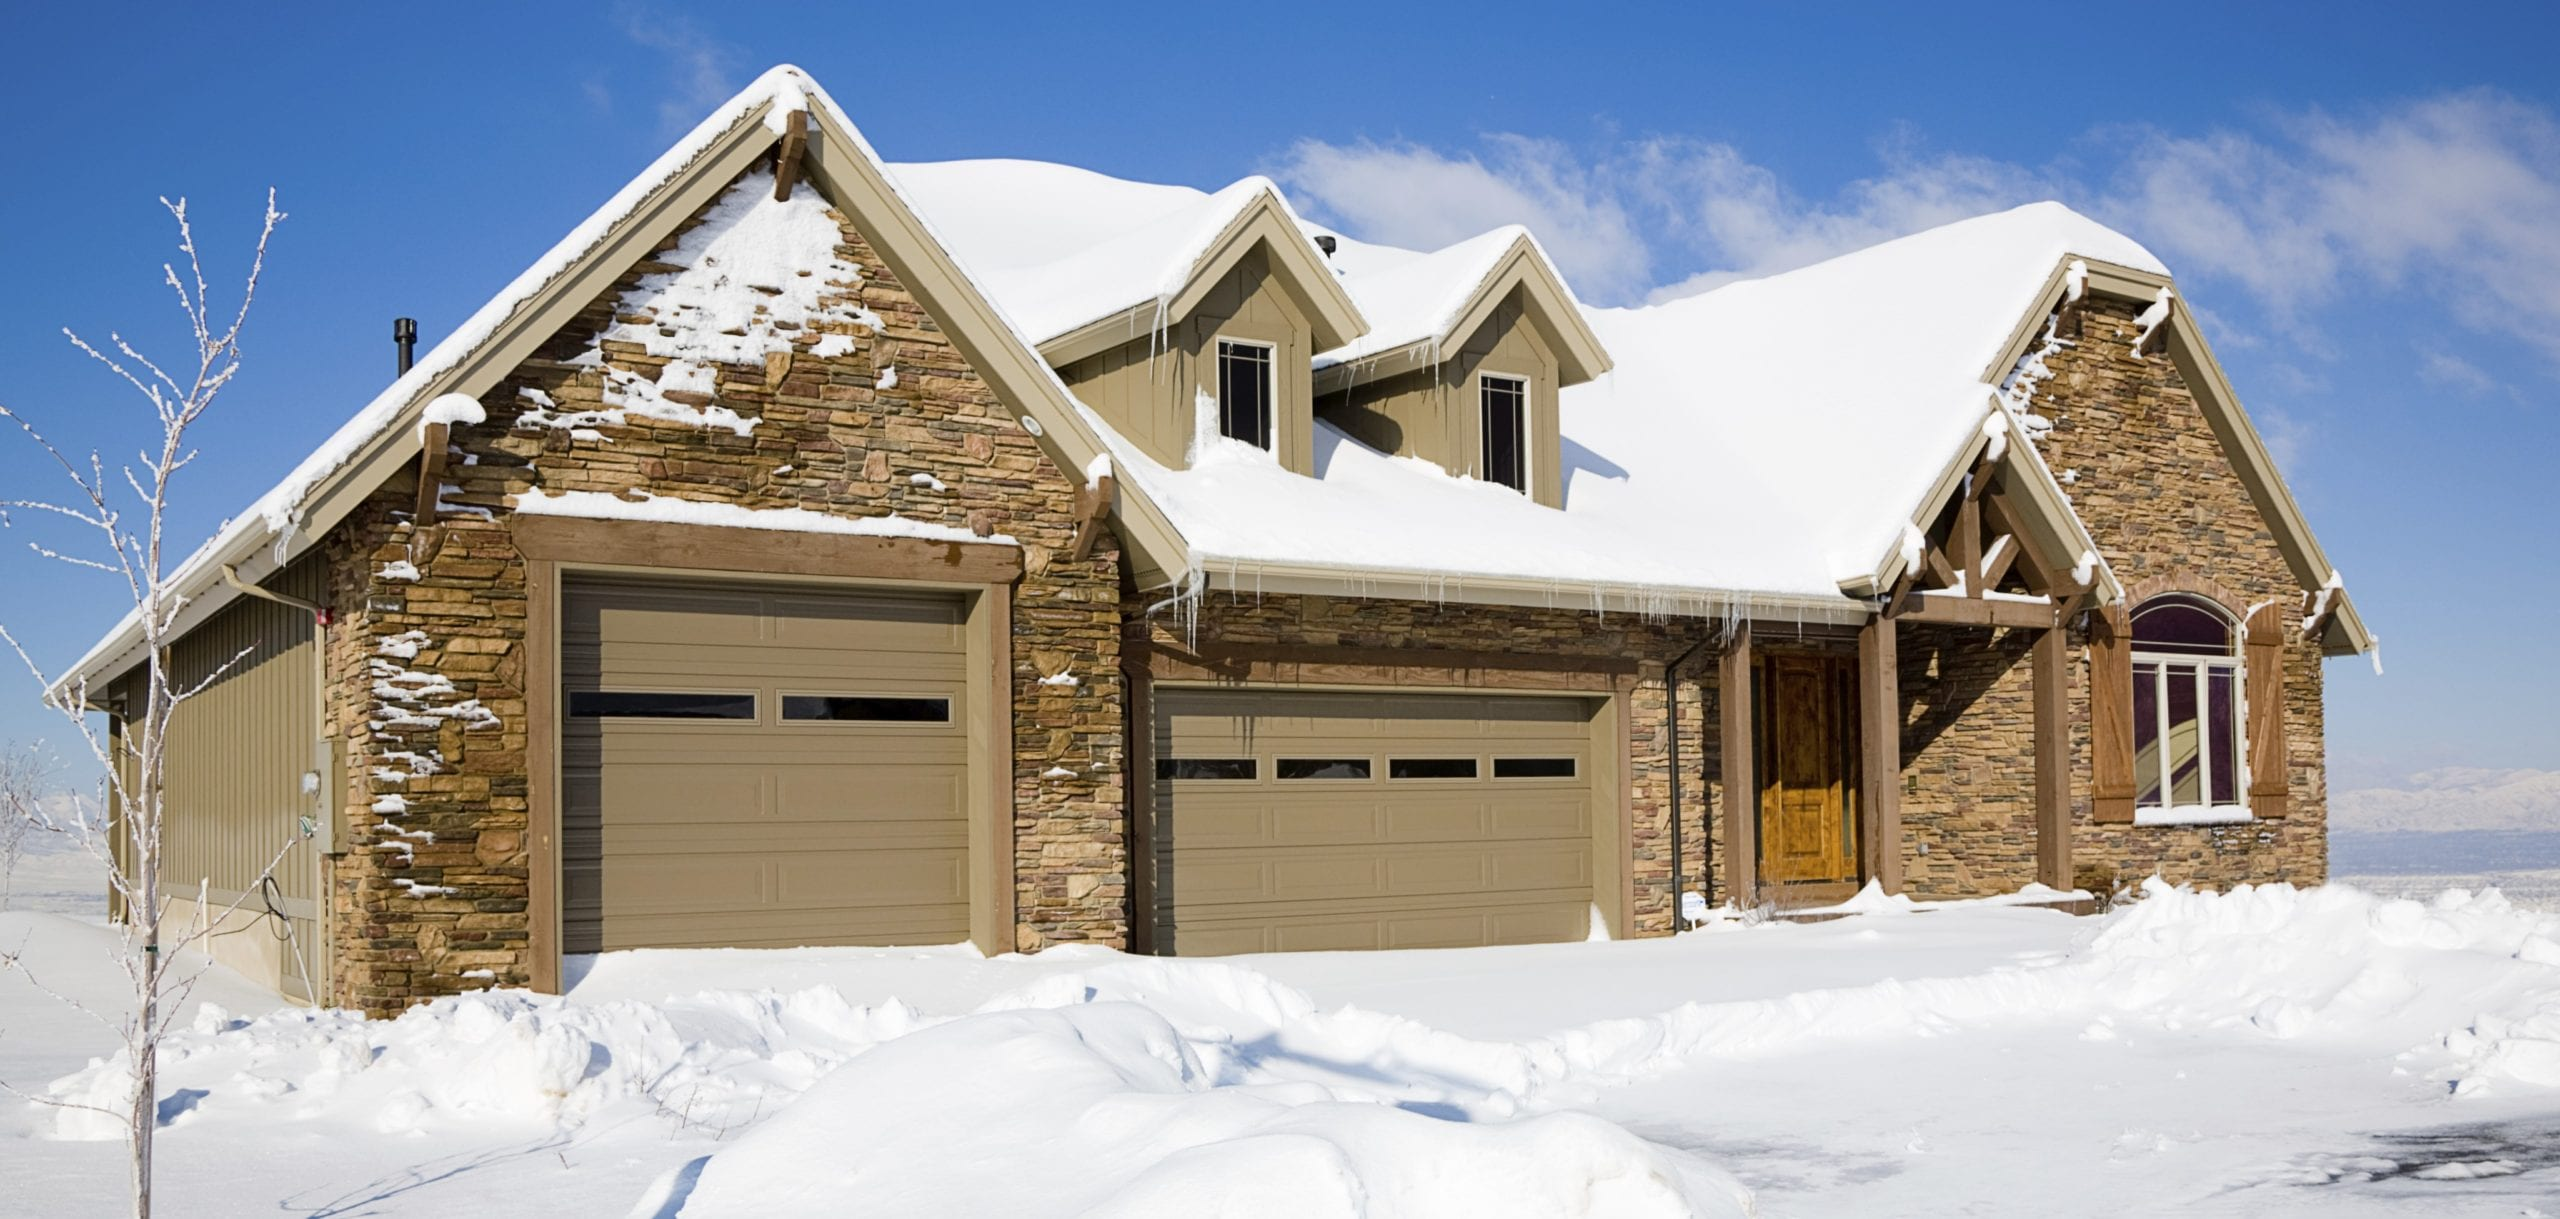 Insulate Your Garage for Winter